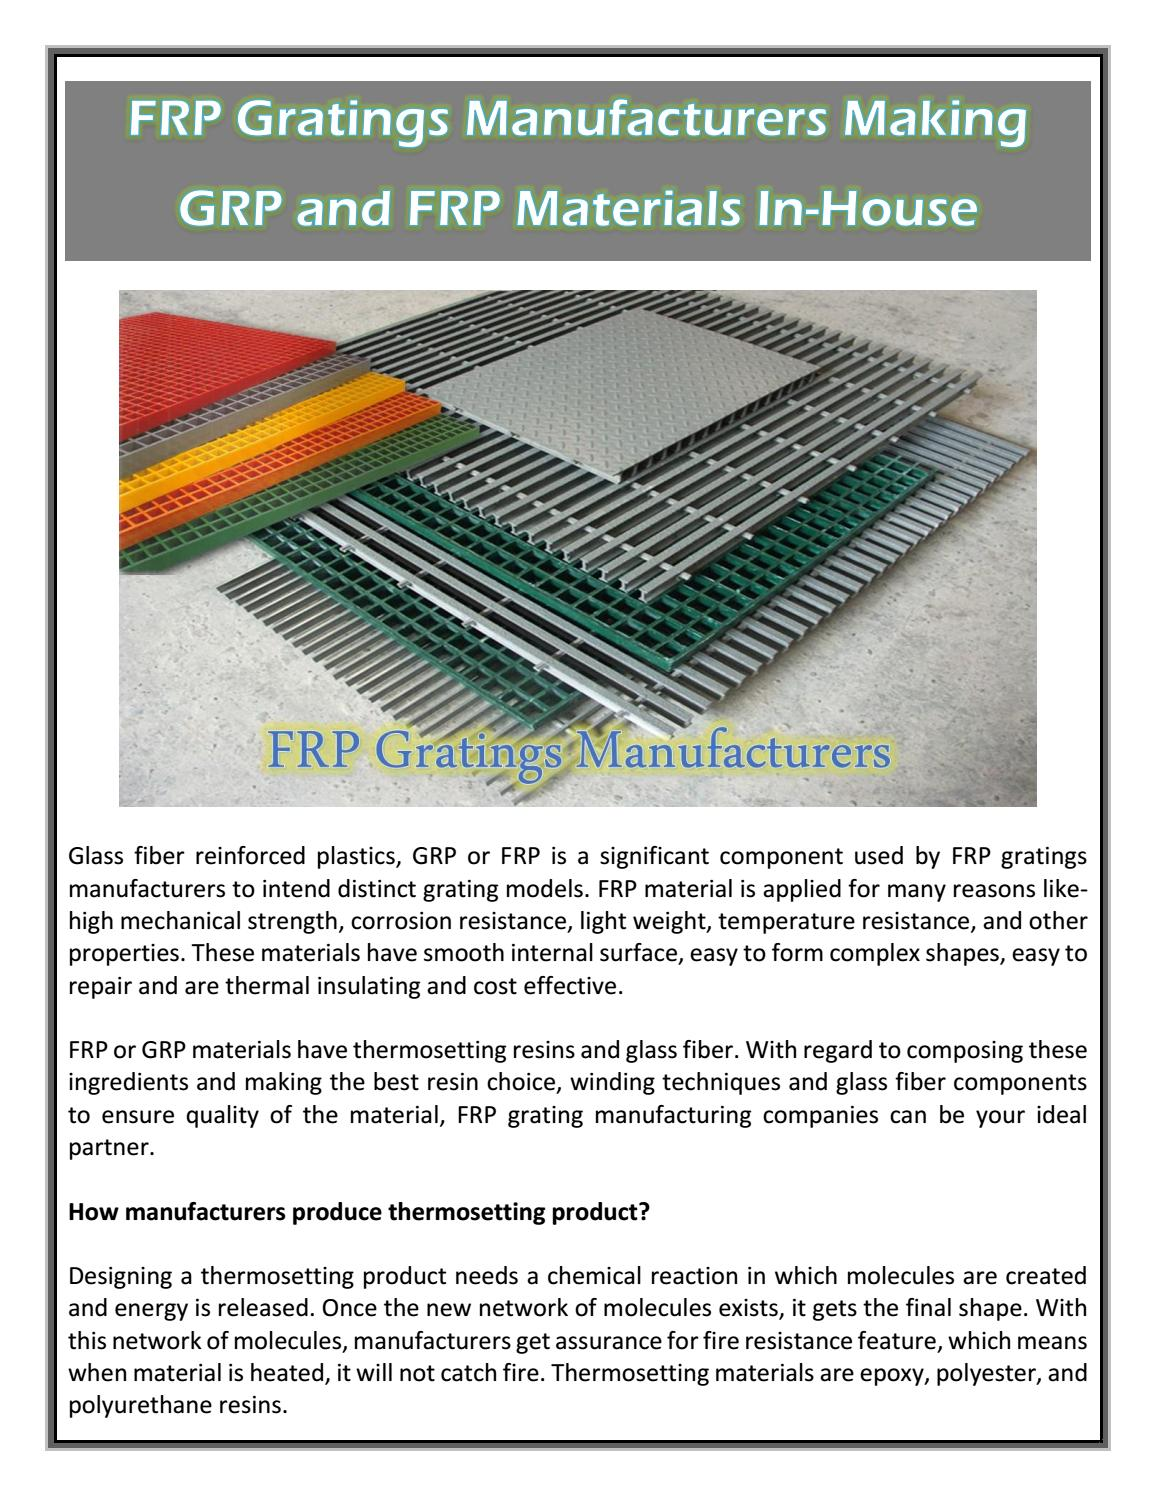 FRP Gratings Manufacturers Making GRP and FRP Materials In